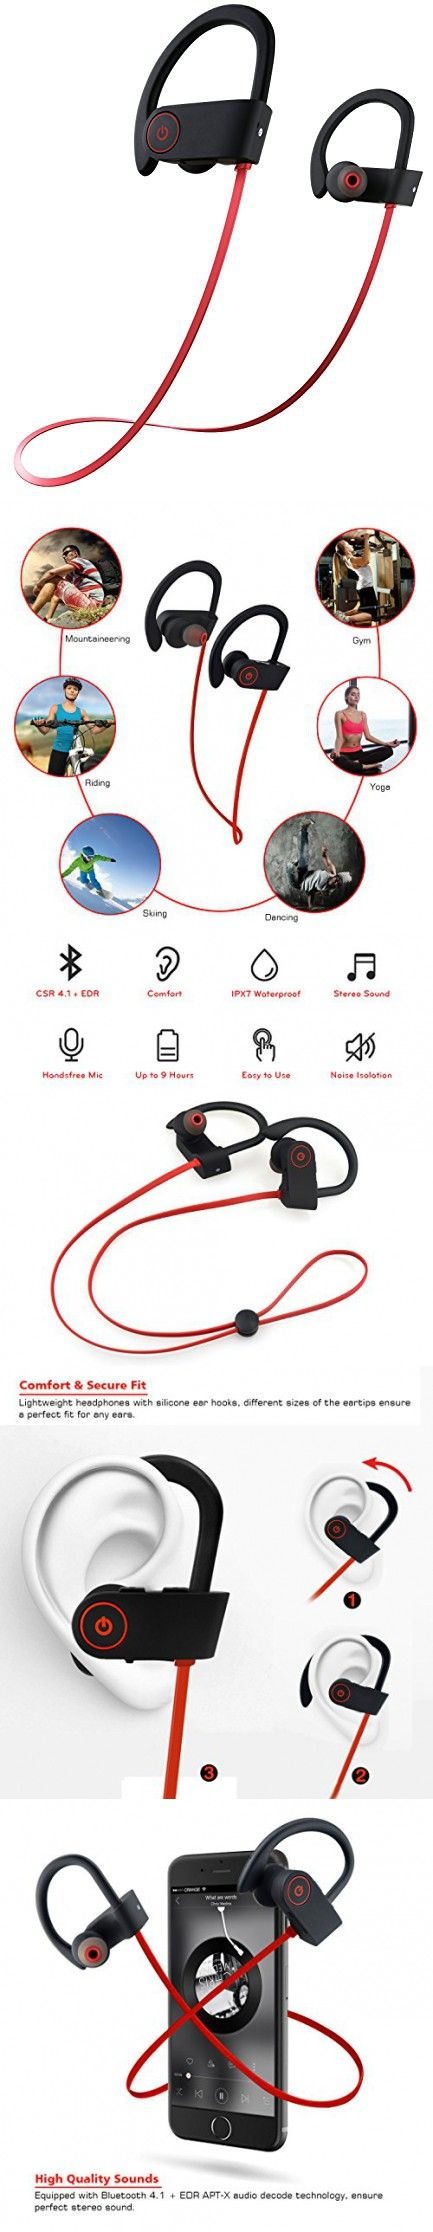 Bluetooth Headphones,Best Wireless Sports Earphones with Mic IPX7 Waterproof Ergonomic Stable Fit In Ear Earbuds Sweatproof Noise Isolating Stereo Headset 9-Hour Woriking Time for Running Workout Gym